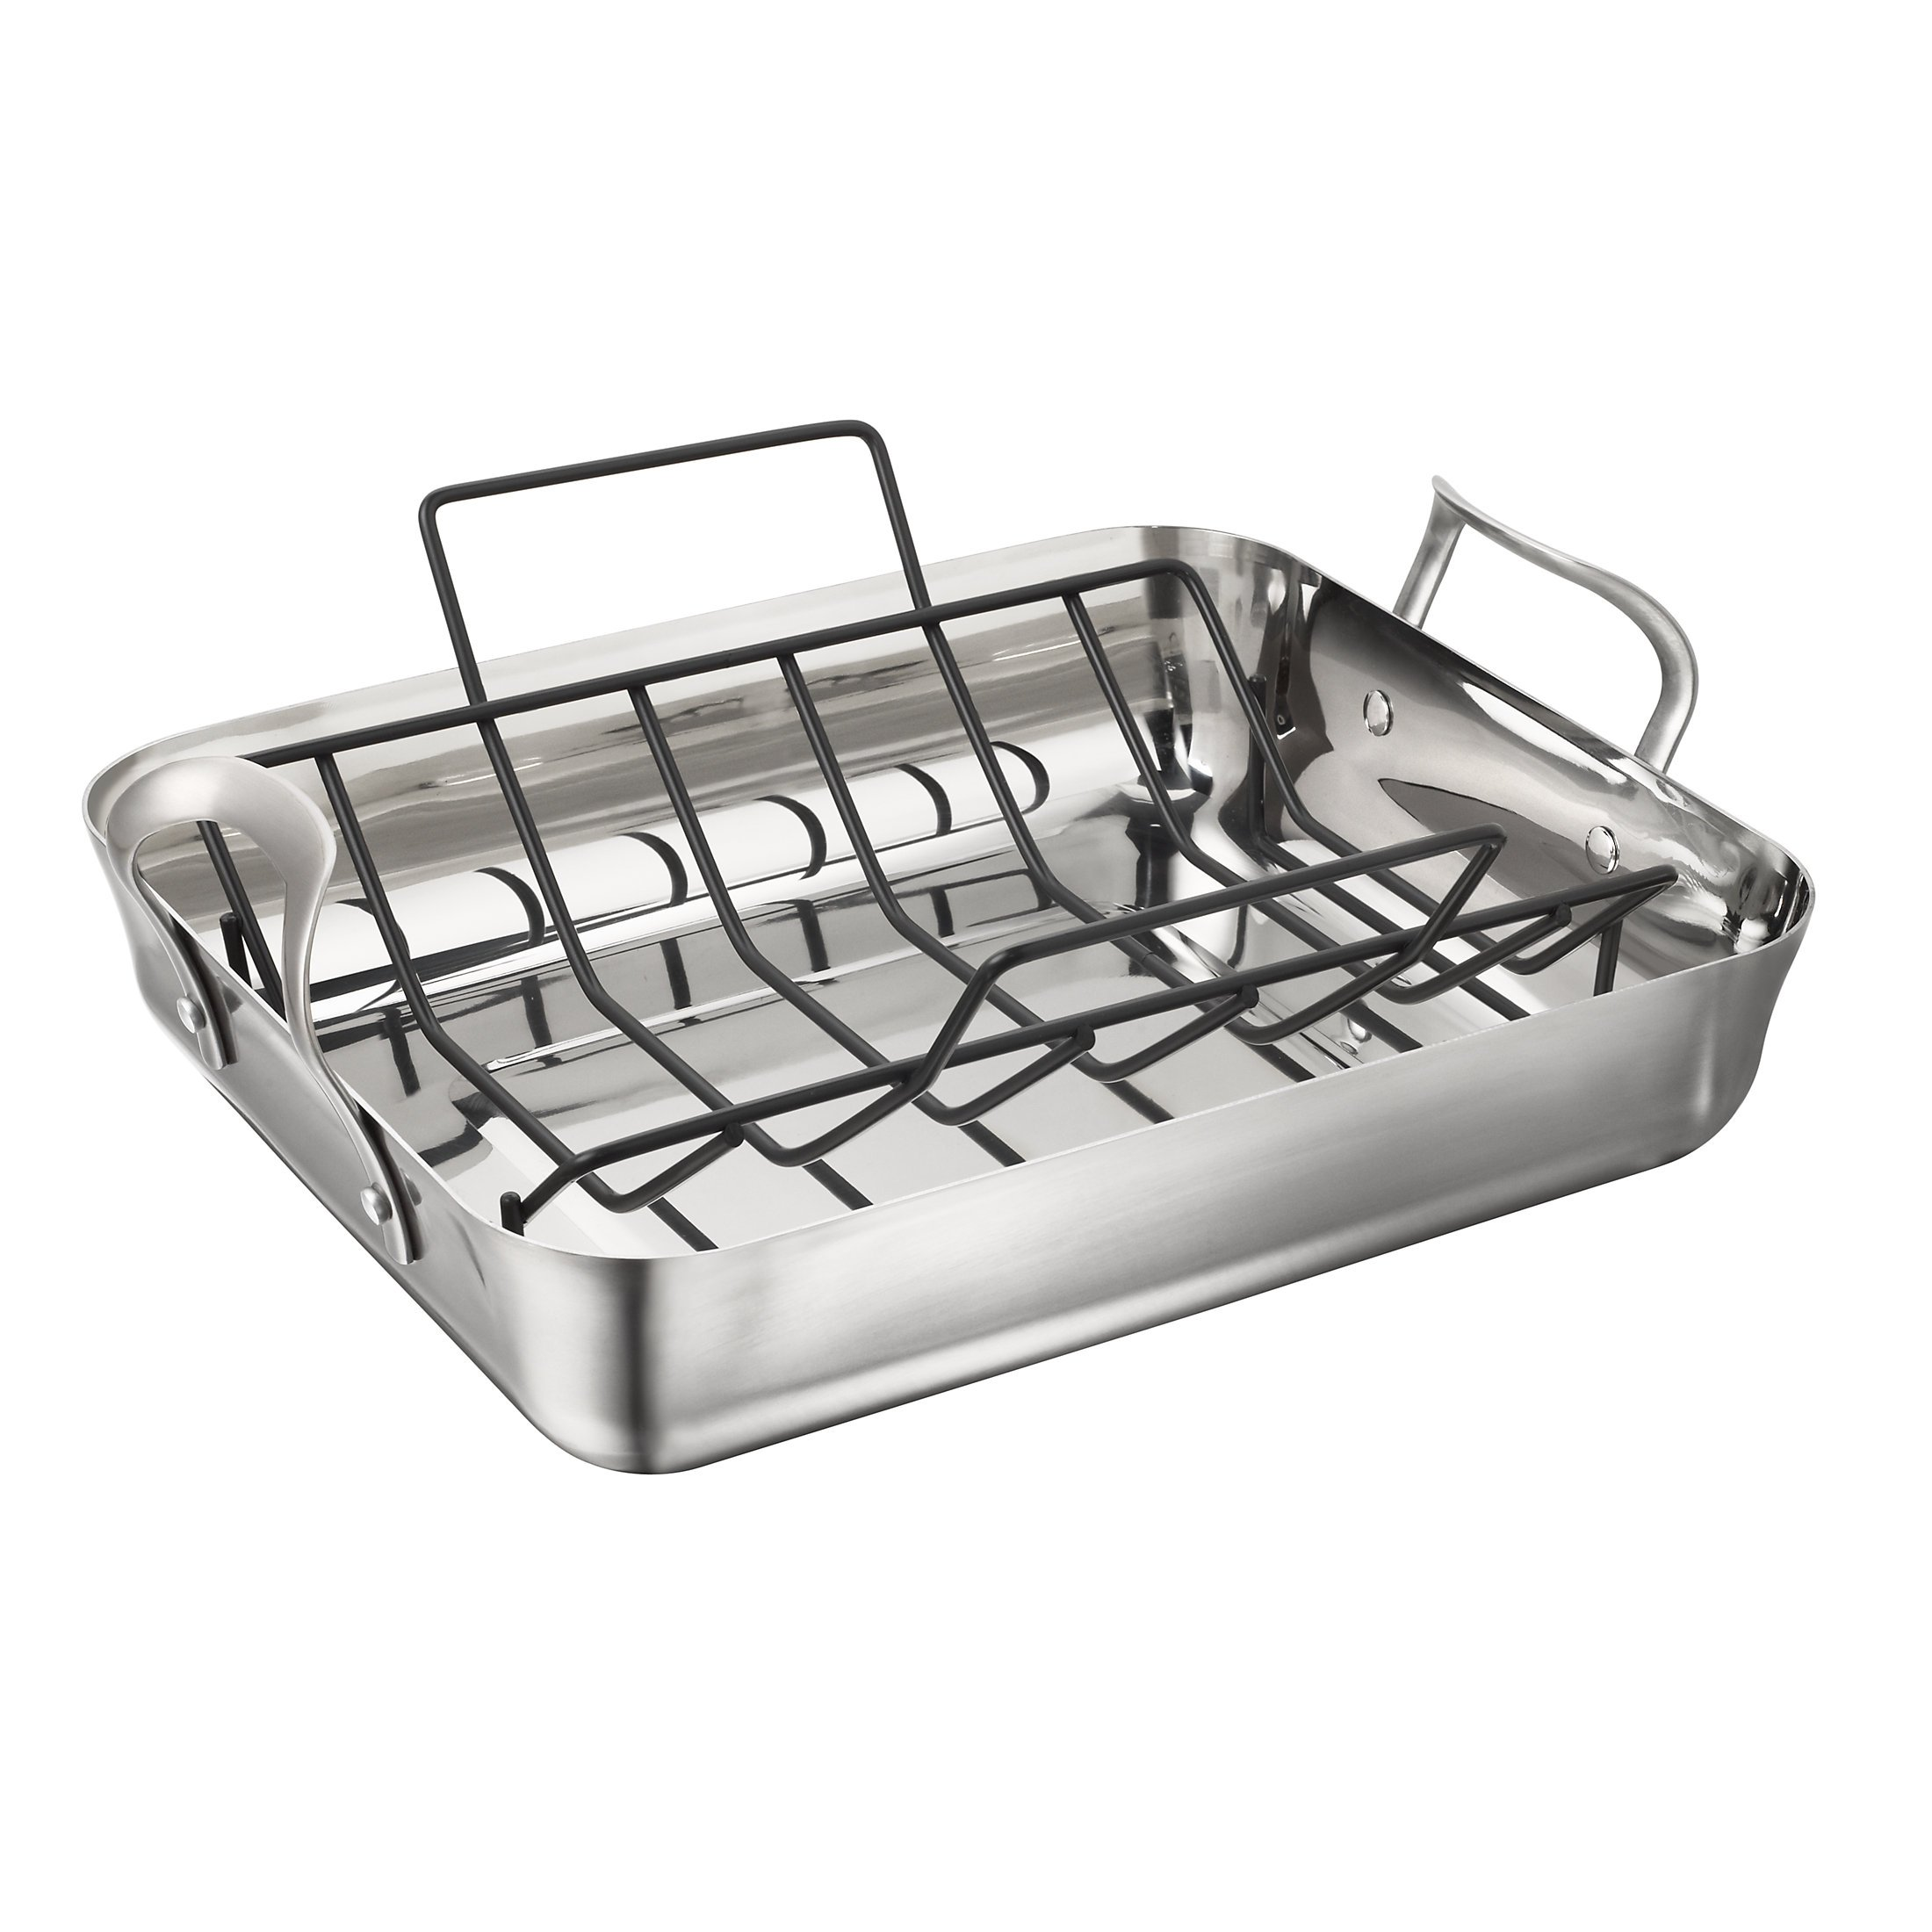 Calphalon Contemporary 16-Inch Stainless Steel Roasting Pan with Rack product image